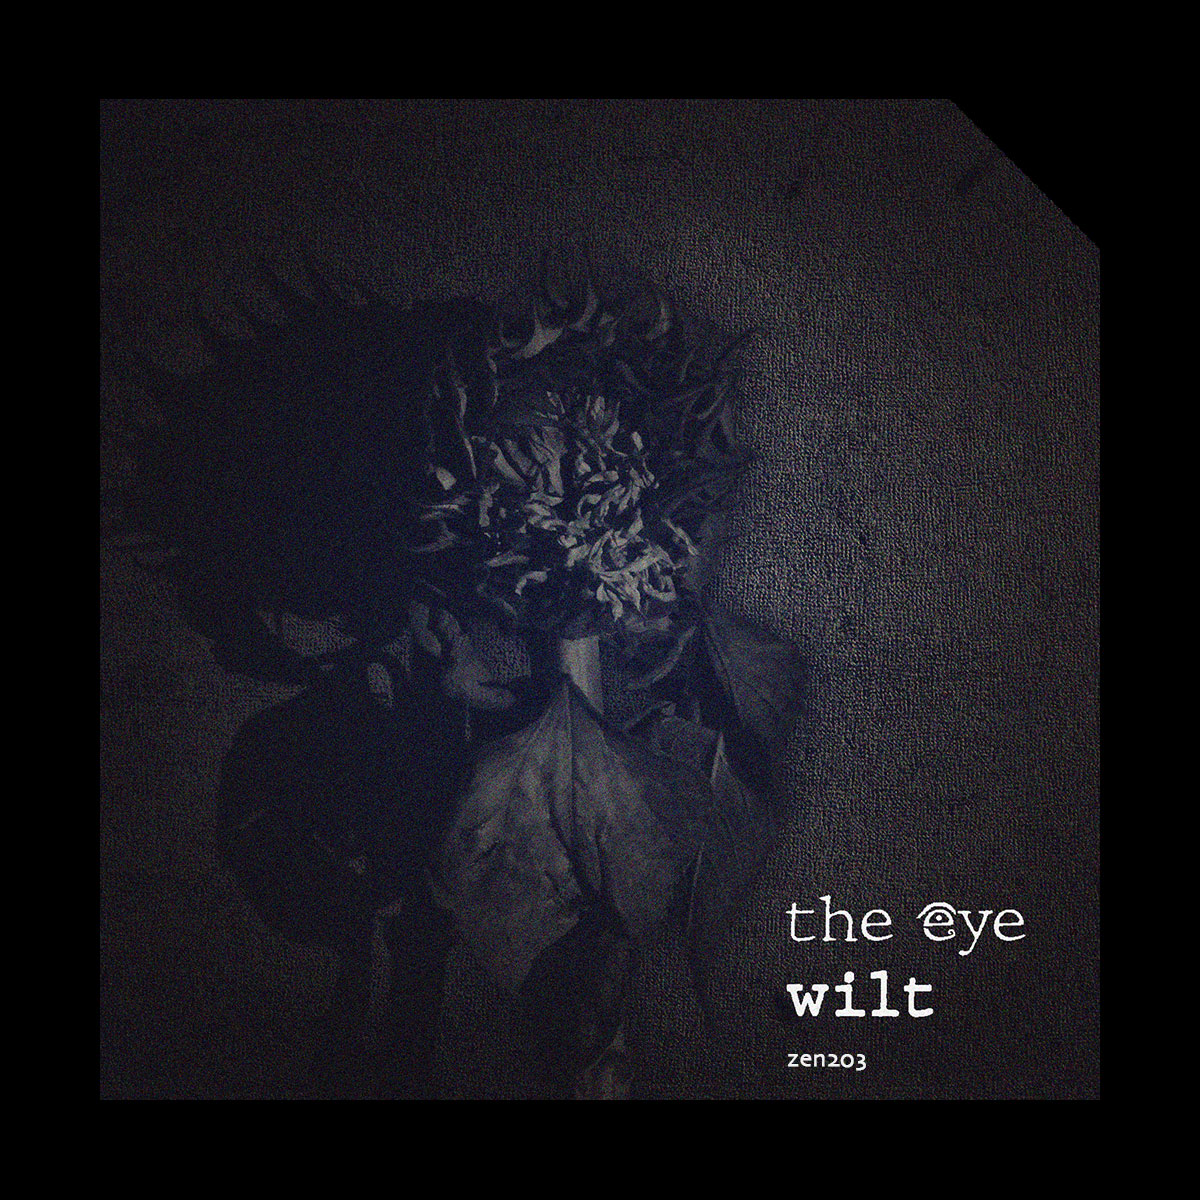 The EyE – Wilt